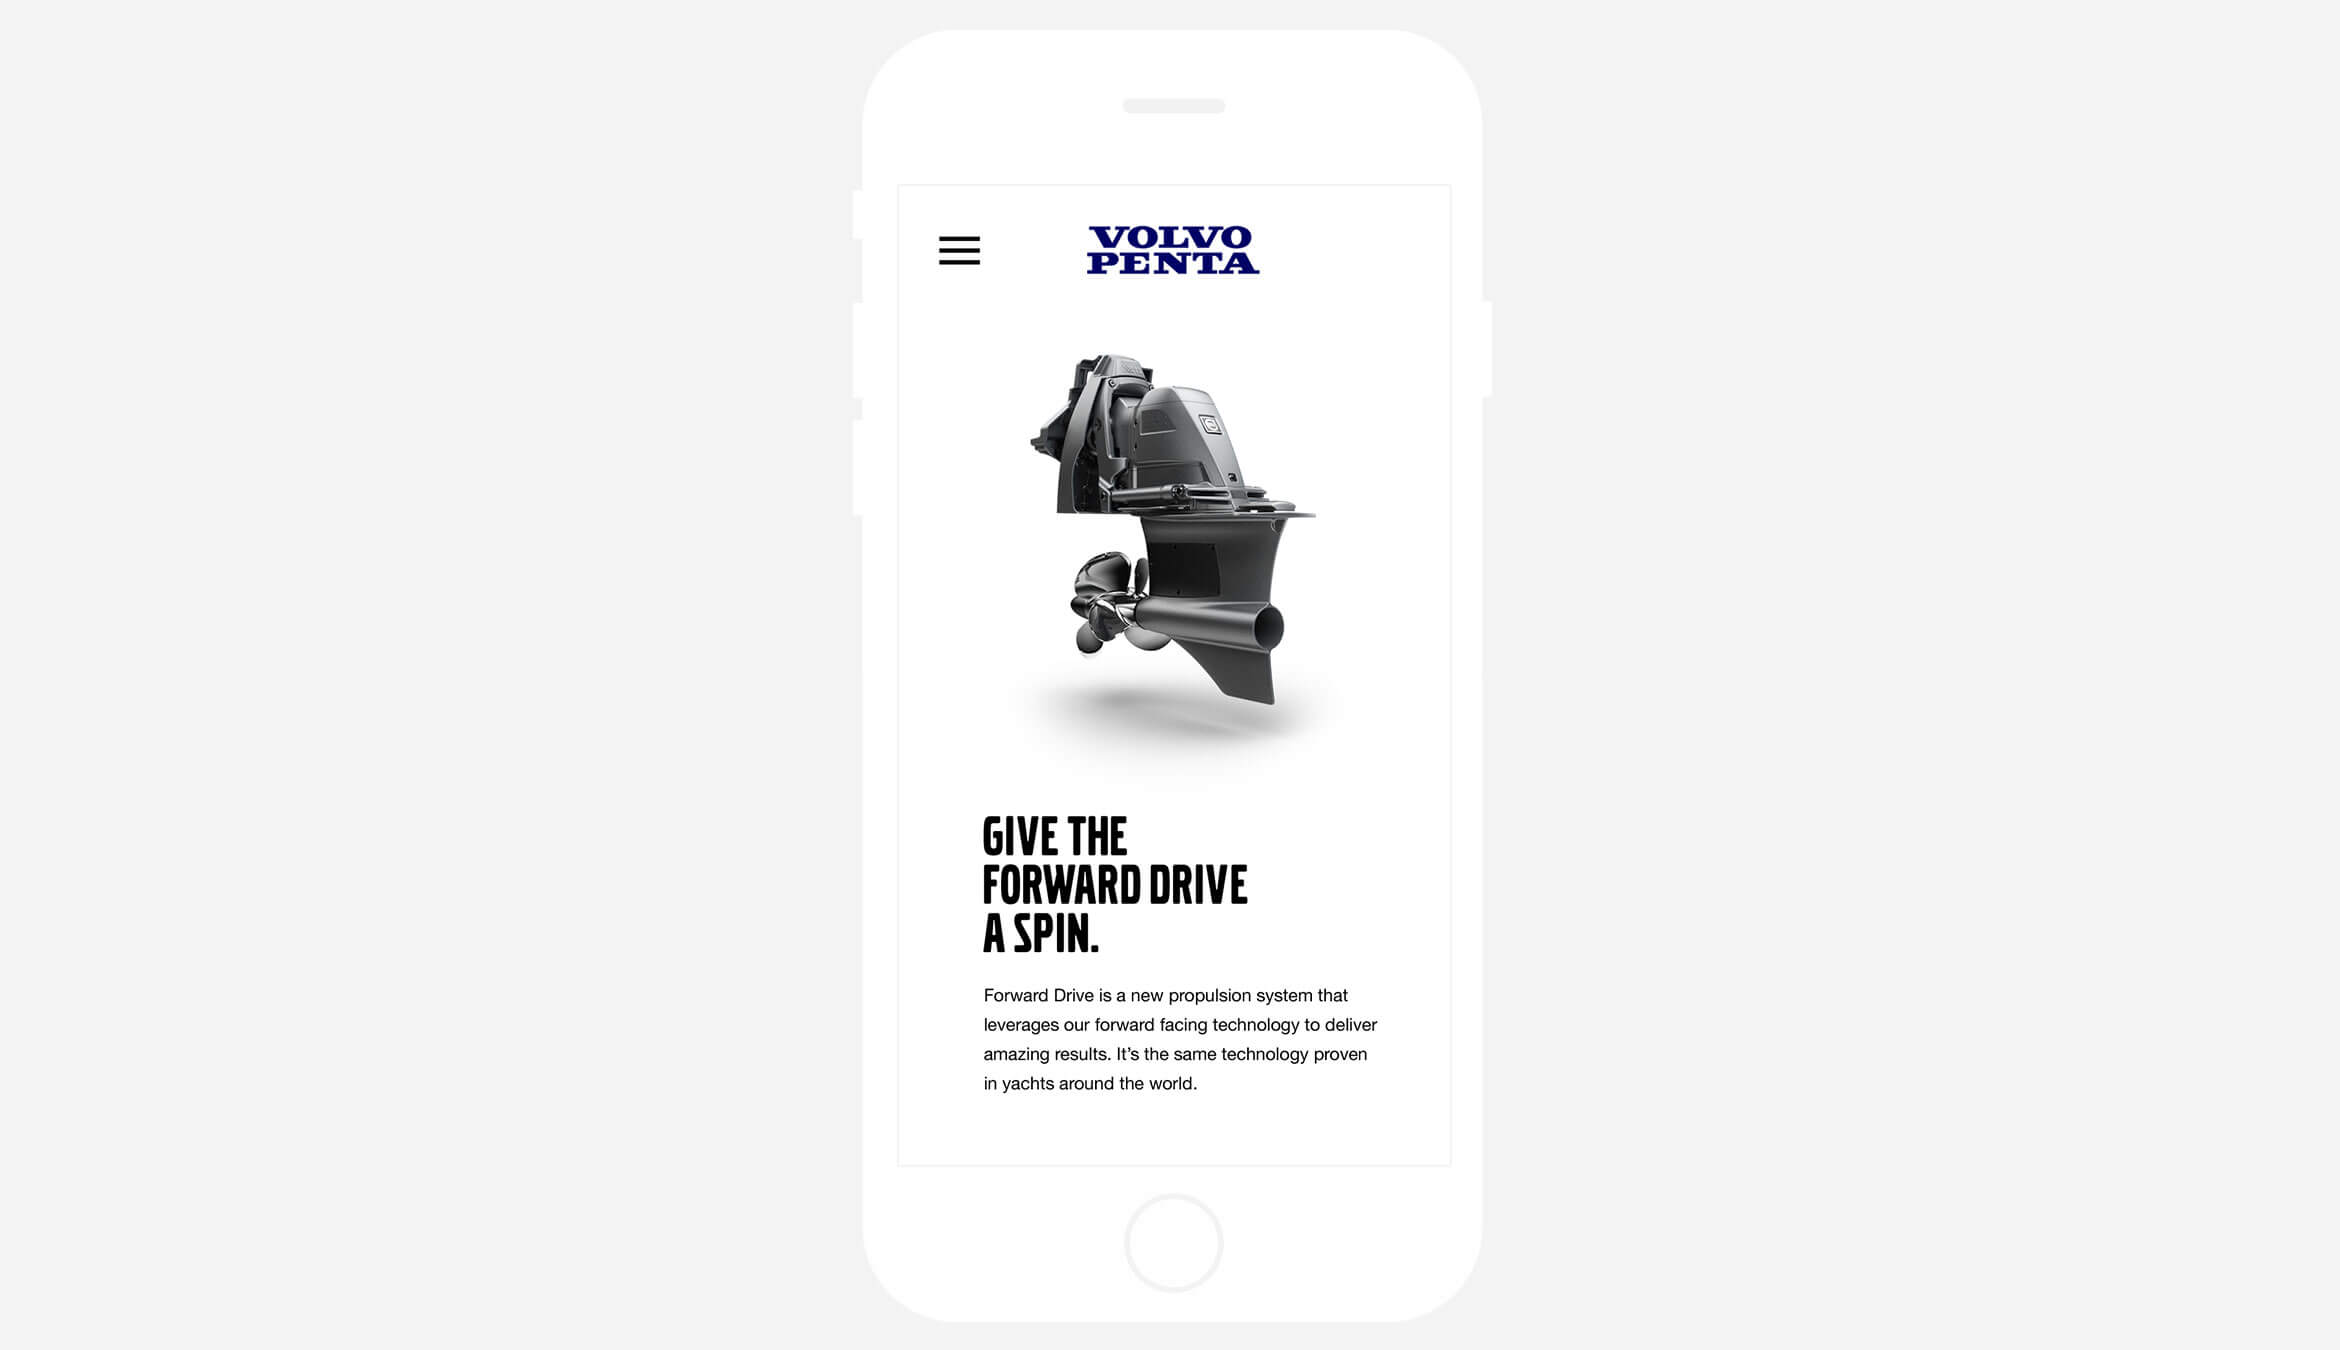 Volvo-mobile-forwarddrive-2x